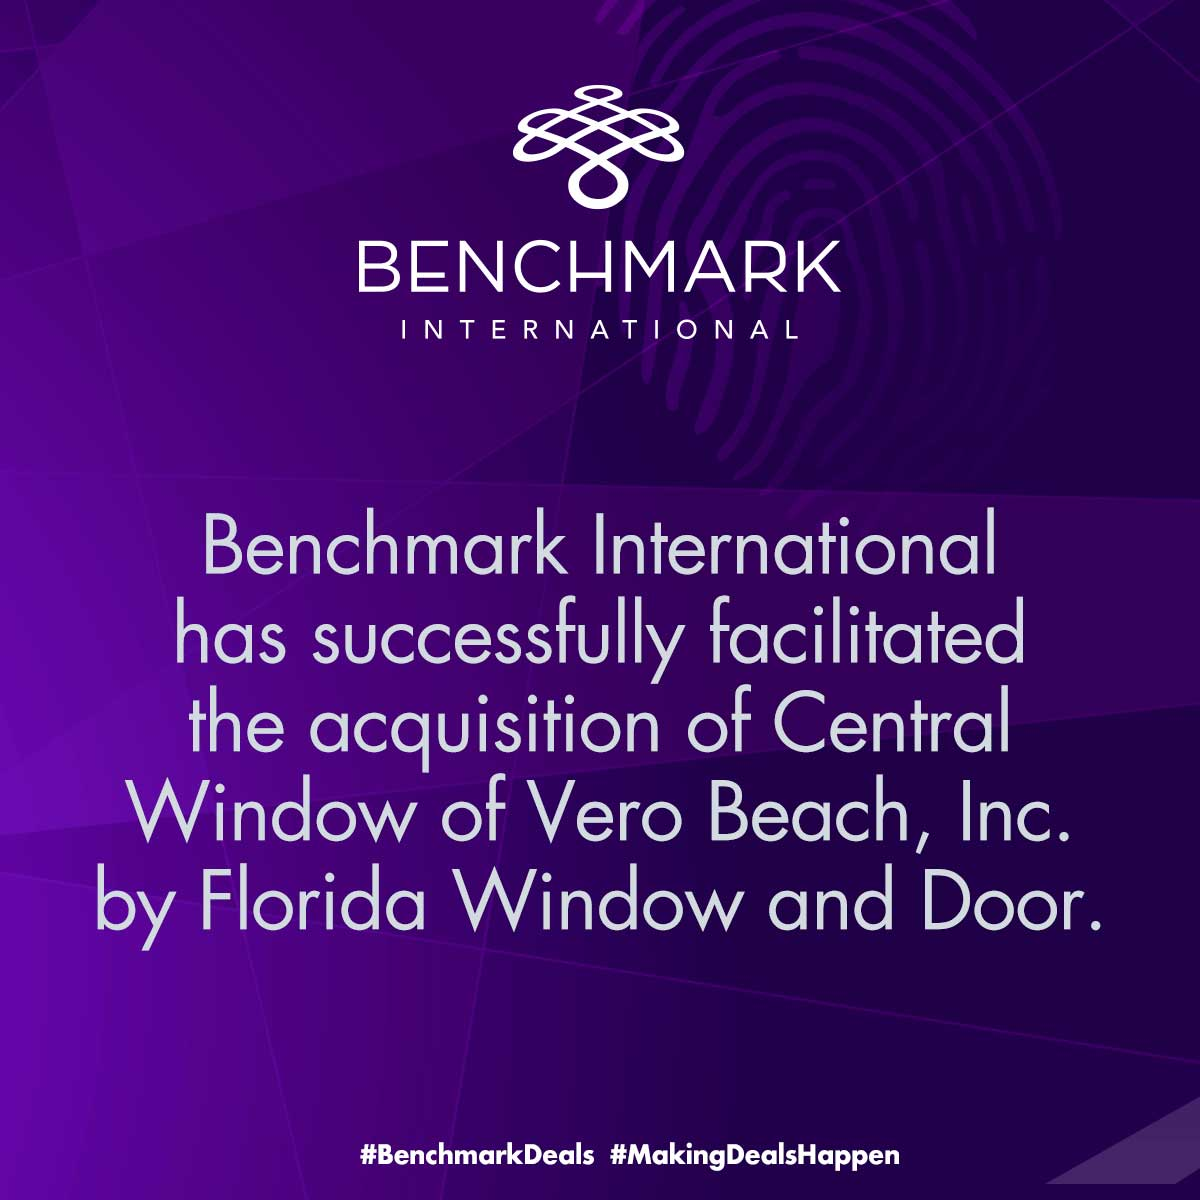 Benchmark International facilitates sale of Central Window